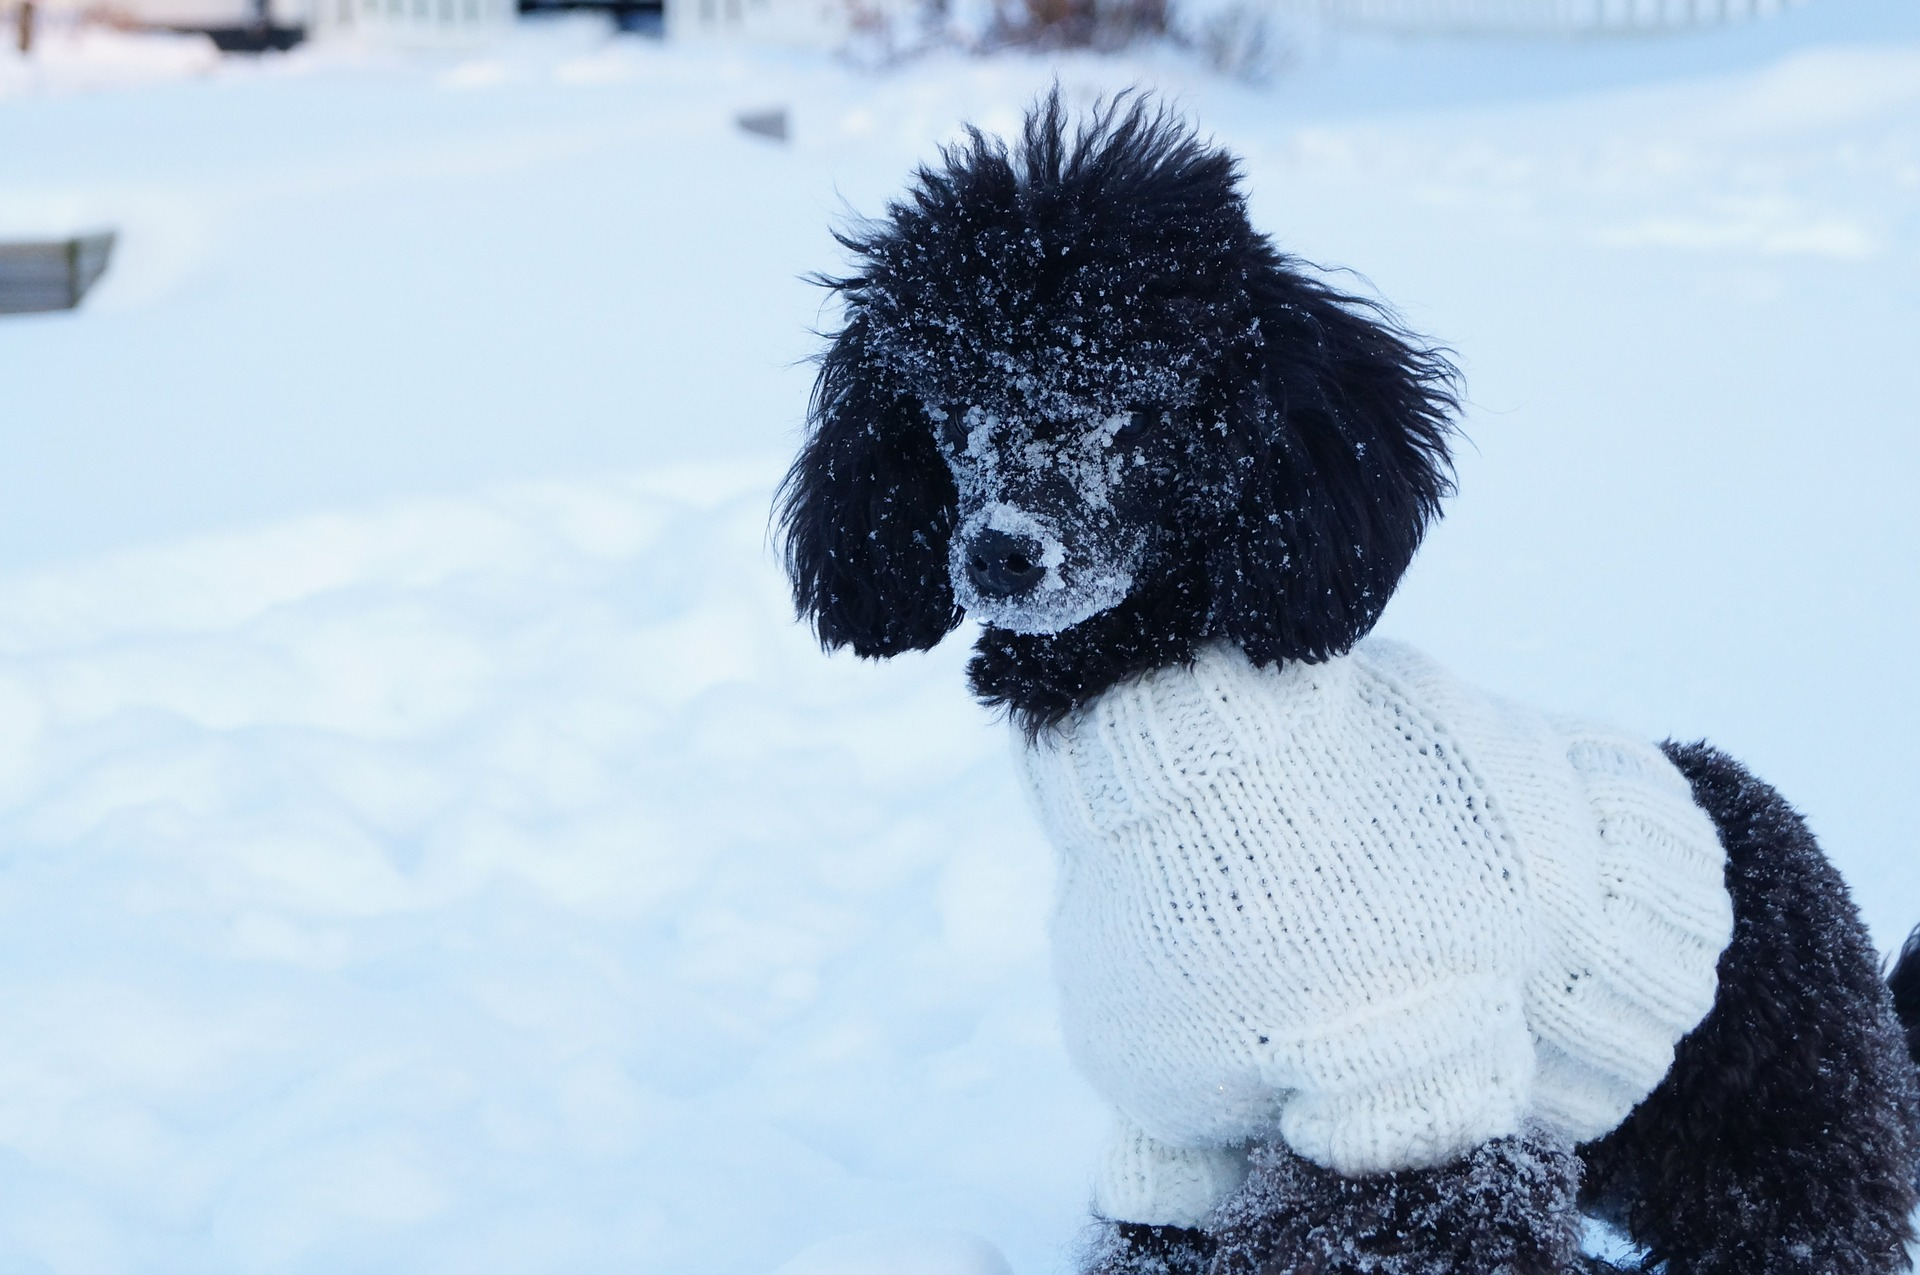 dress your dog for cold weather